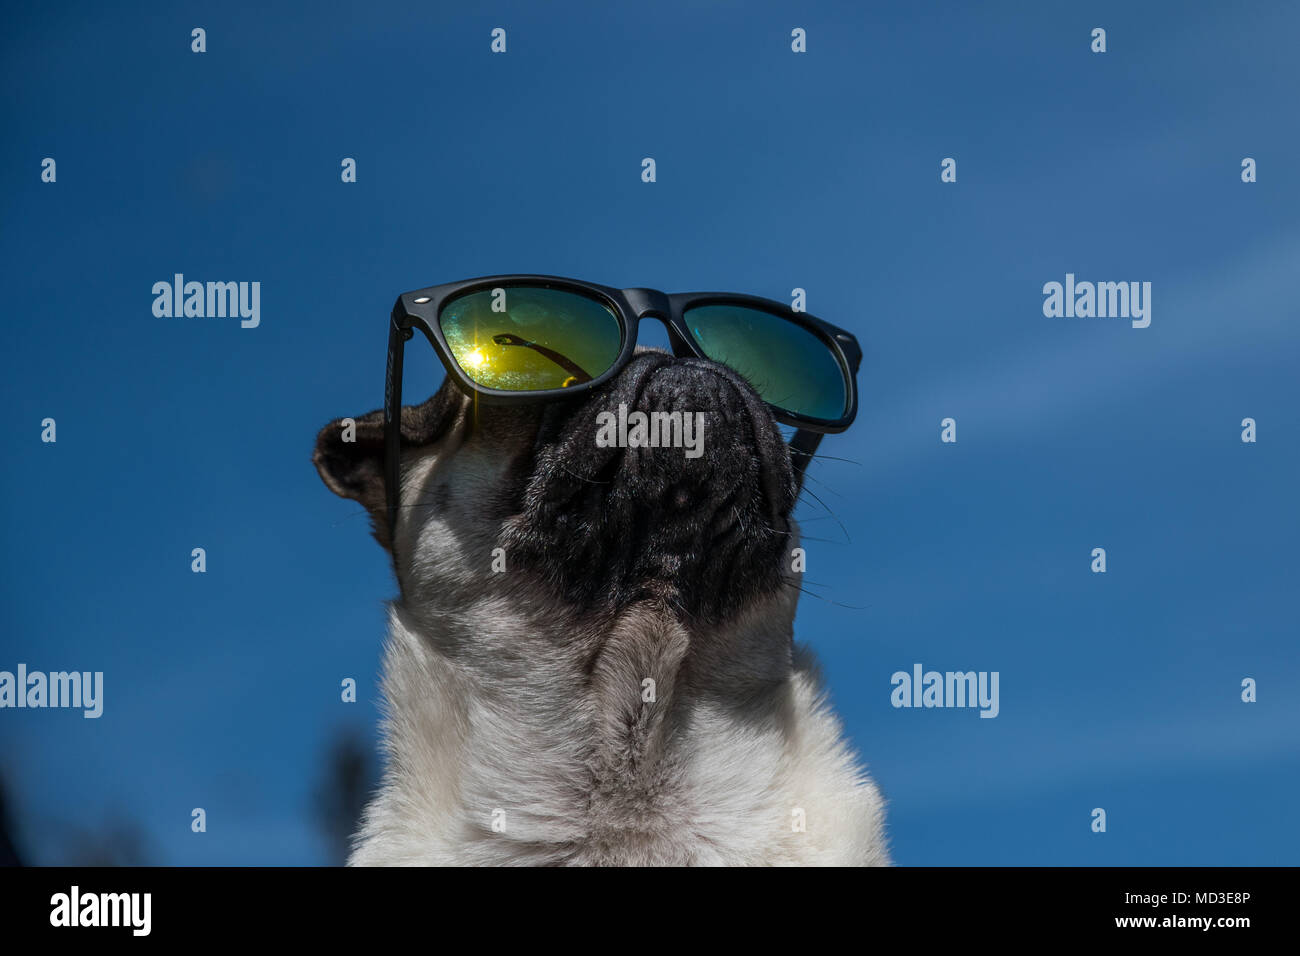 Mousehole, Cornwall, UK. 18th April 2018. UK Weather. Titan the Pug puppy out in his back garden in the bright sunshine on the hottest day of the year so far. Credit: Simon Maycock/Alamy Live News - Stock Image